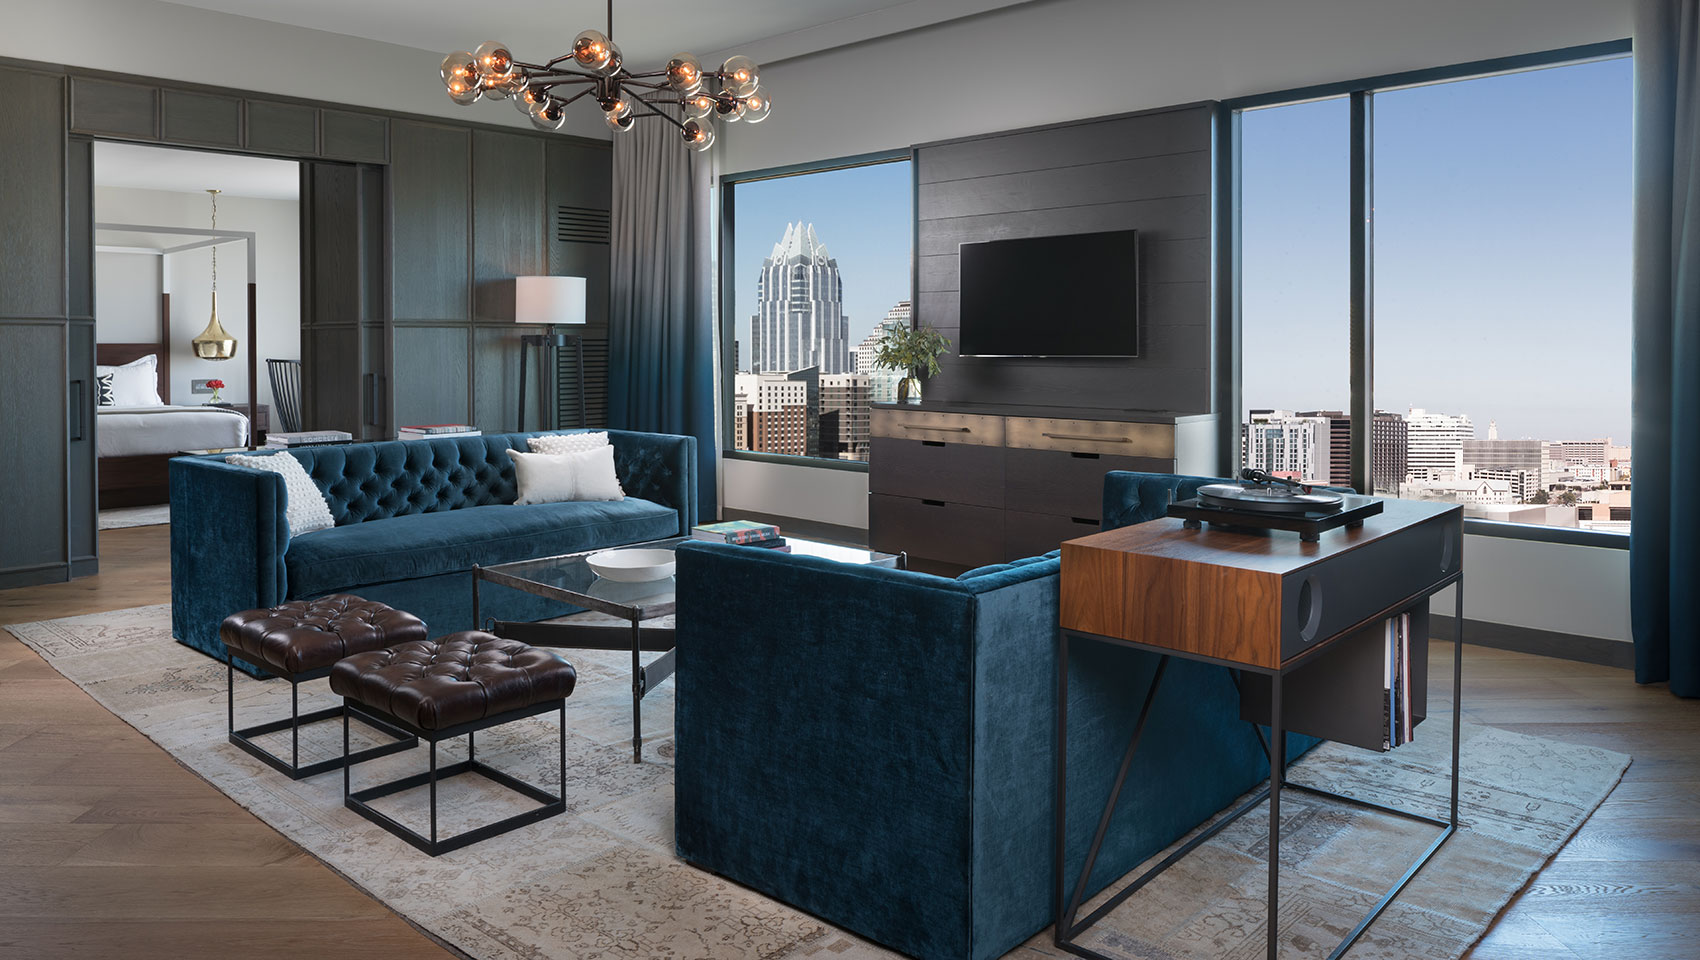 A downtown view in Kimpton's Austin hotel suites.